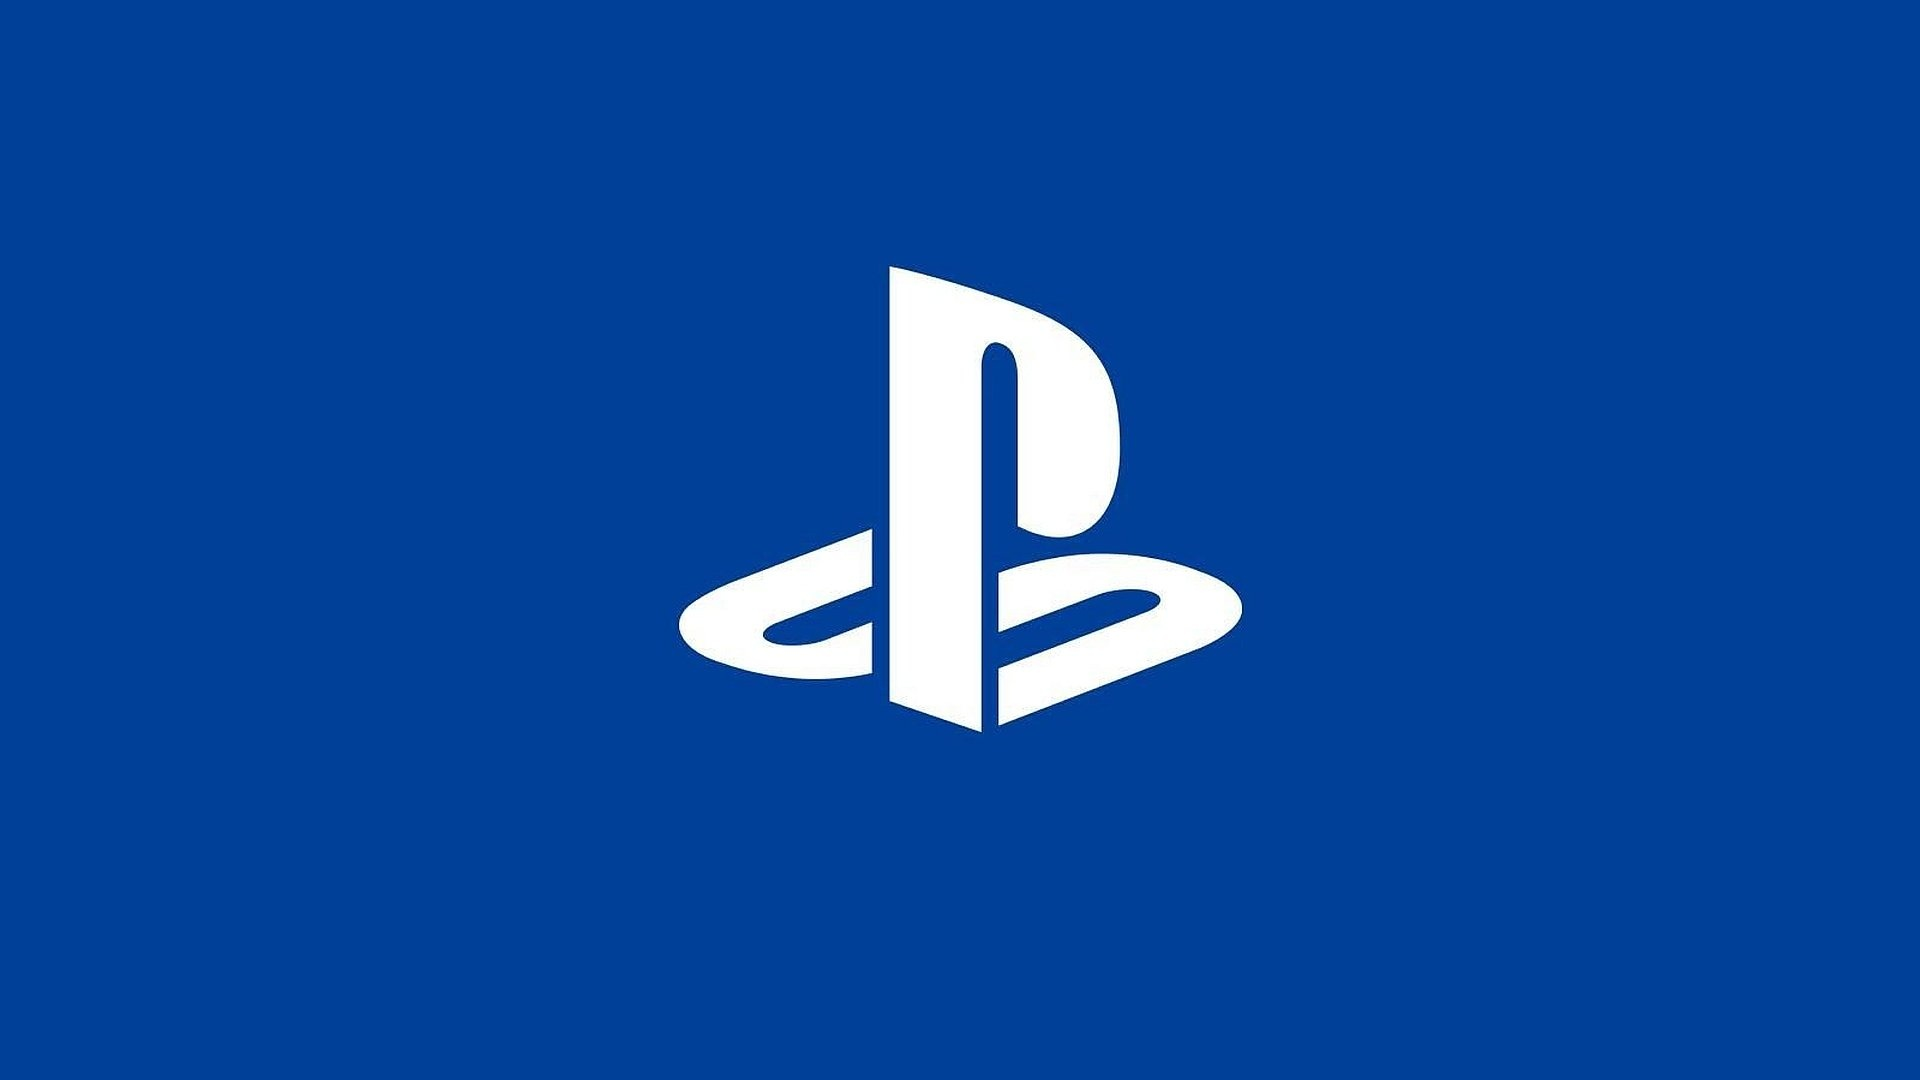 PlayStation 5 goes SSD